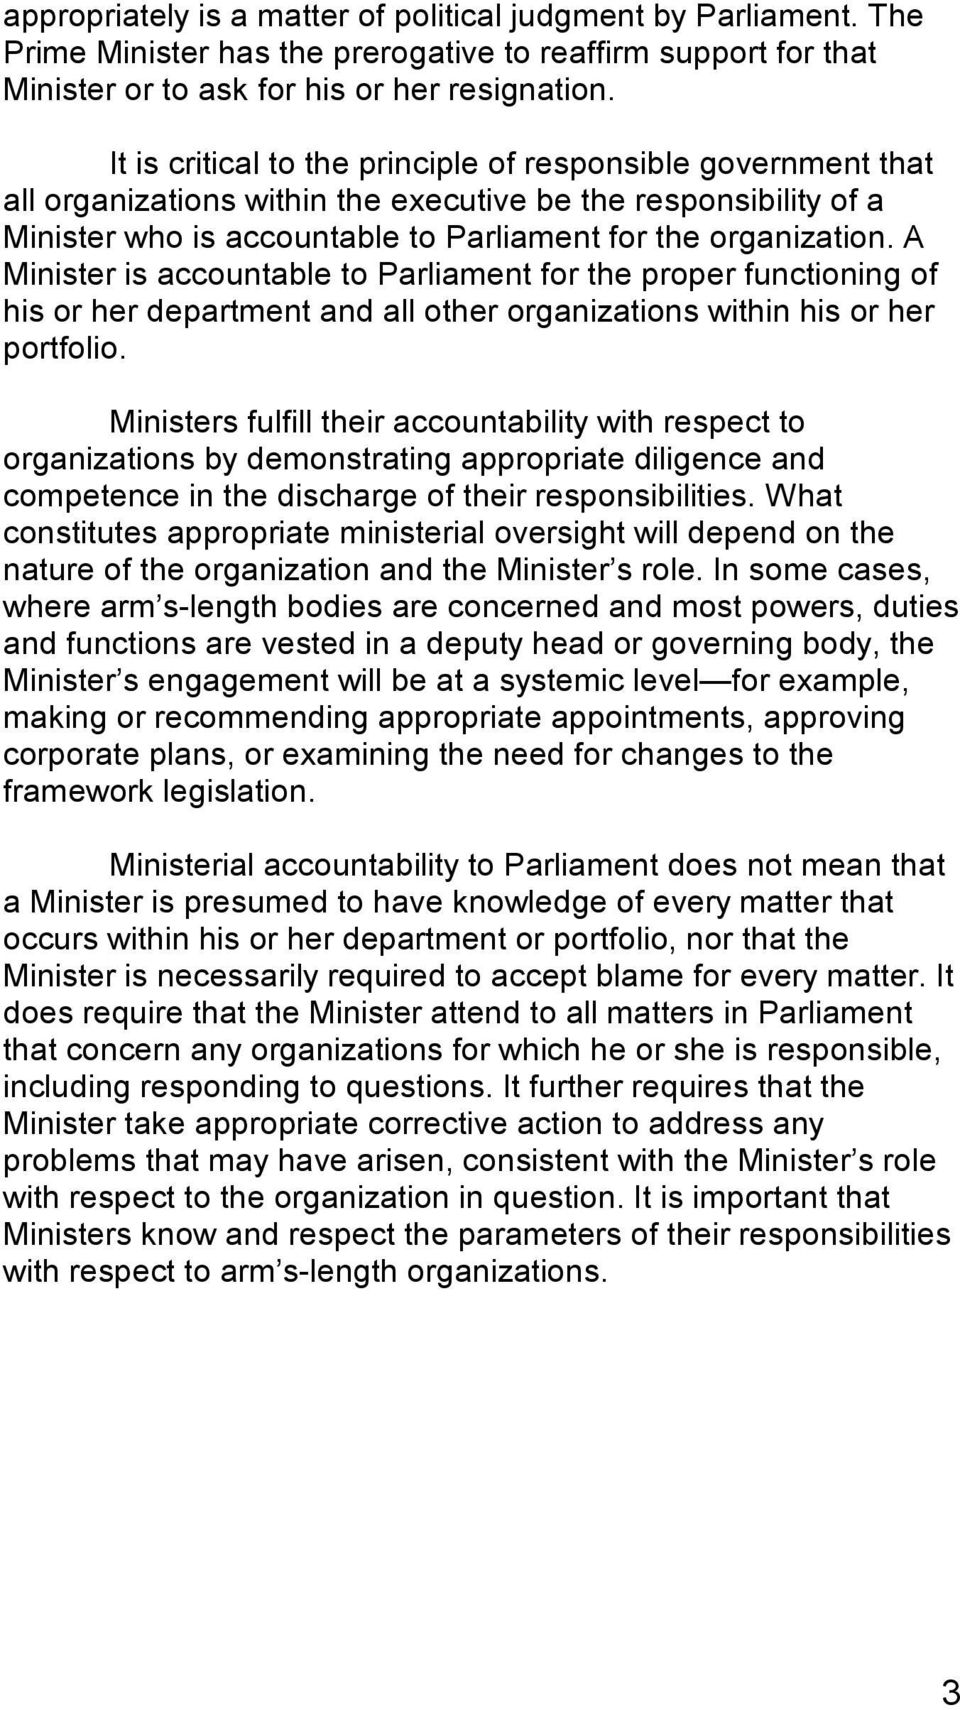 A Minister is accountable to Parliament for the proper functioning of his or her department and all other organizations within his or her portfolio.